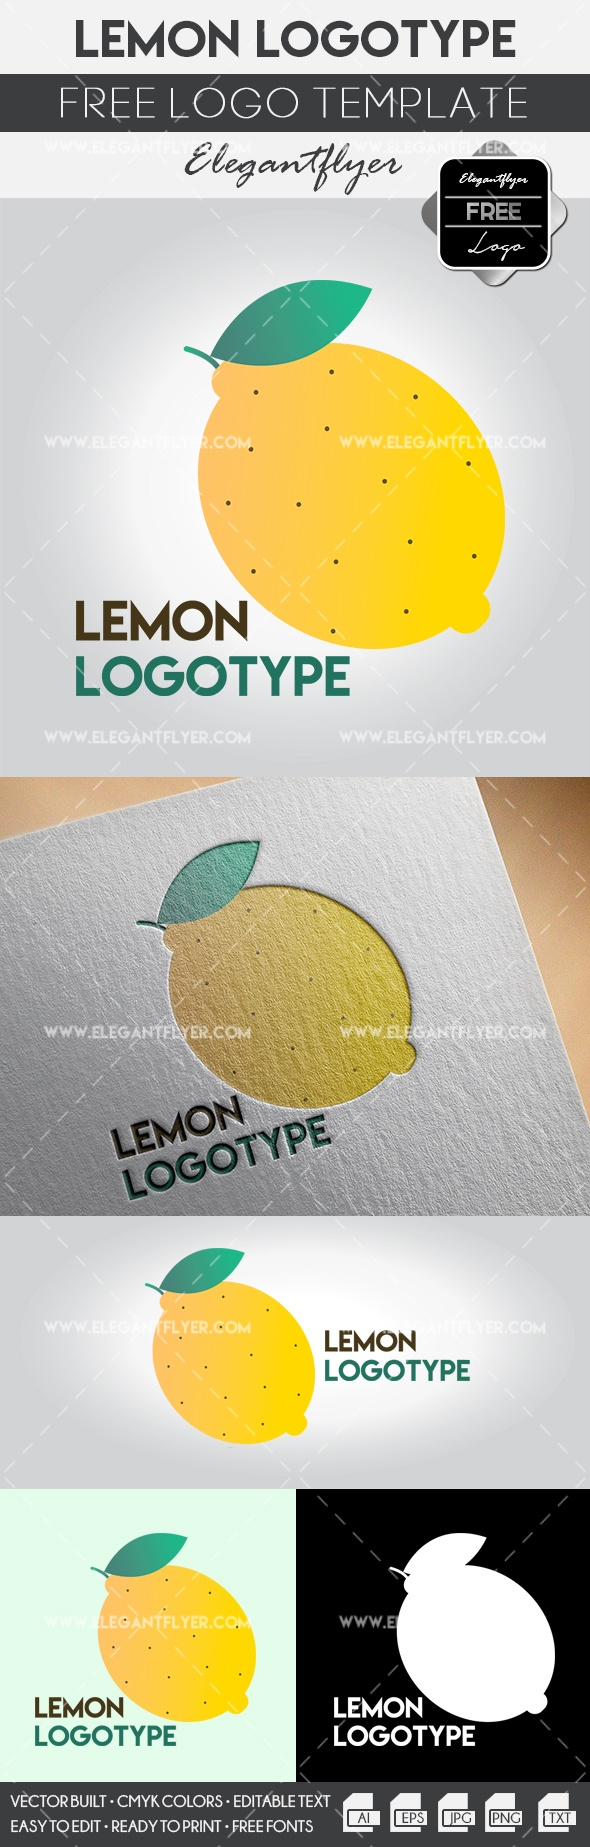 Lemon – Free Logo Templates